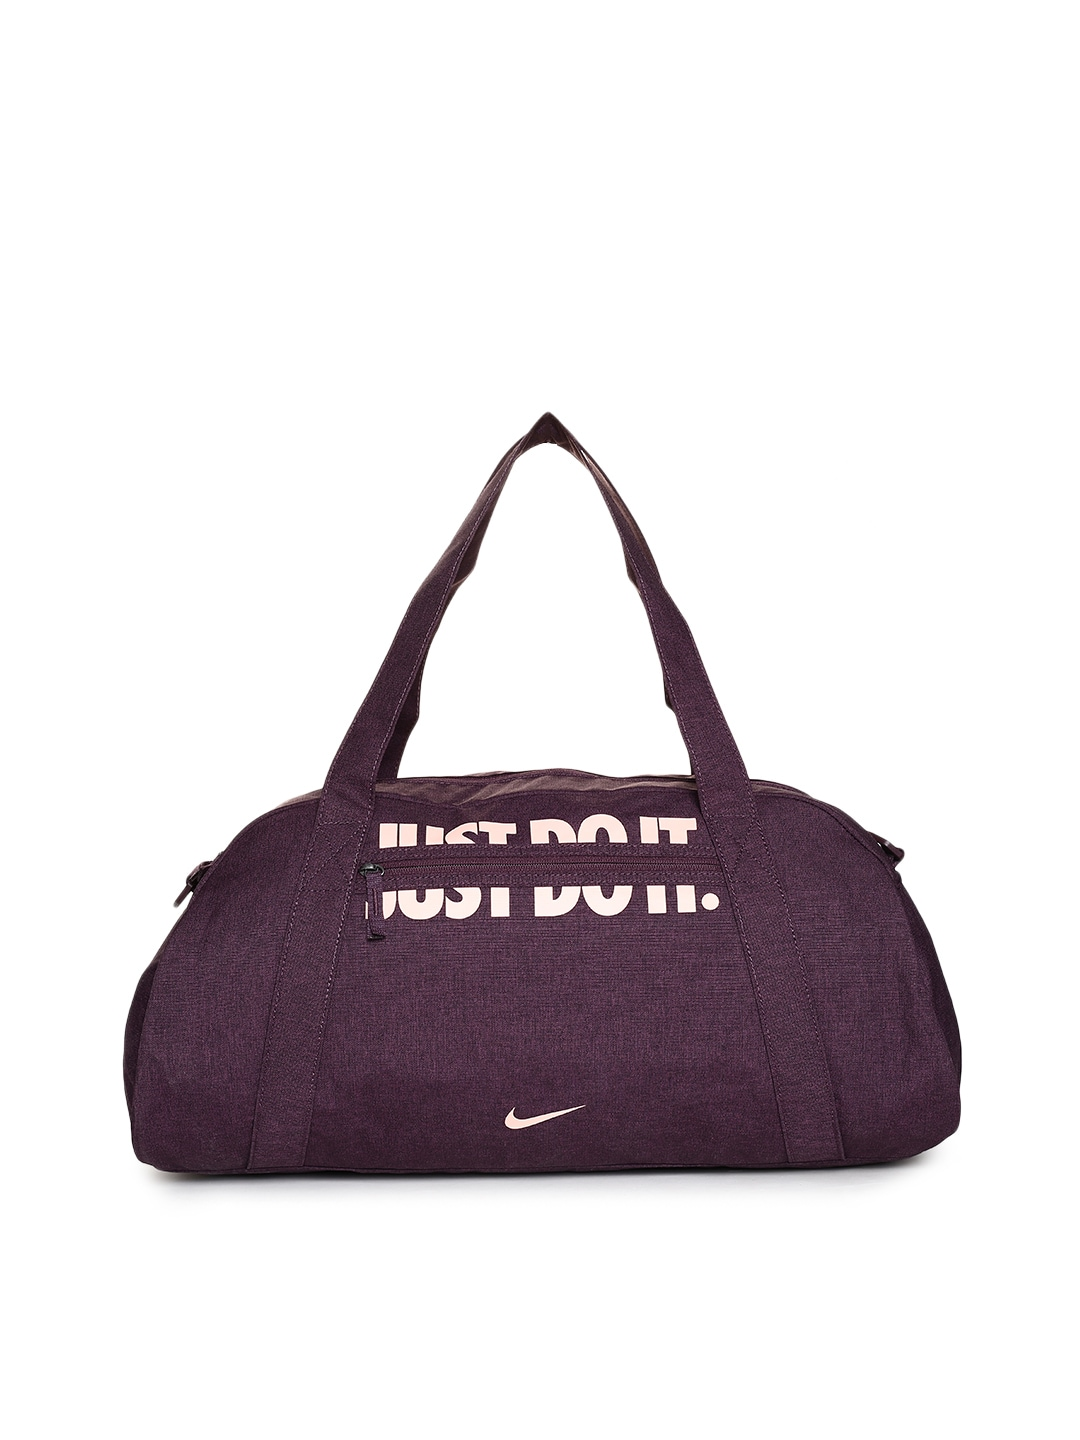 Nike Women Purple Gym Club Training Duffel Bag e1809b57eb0b1